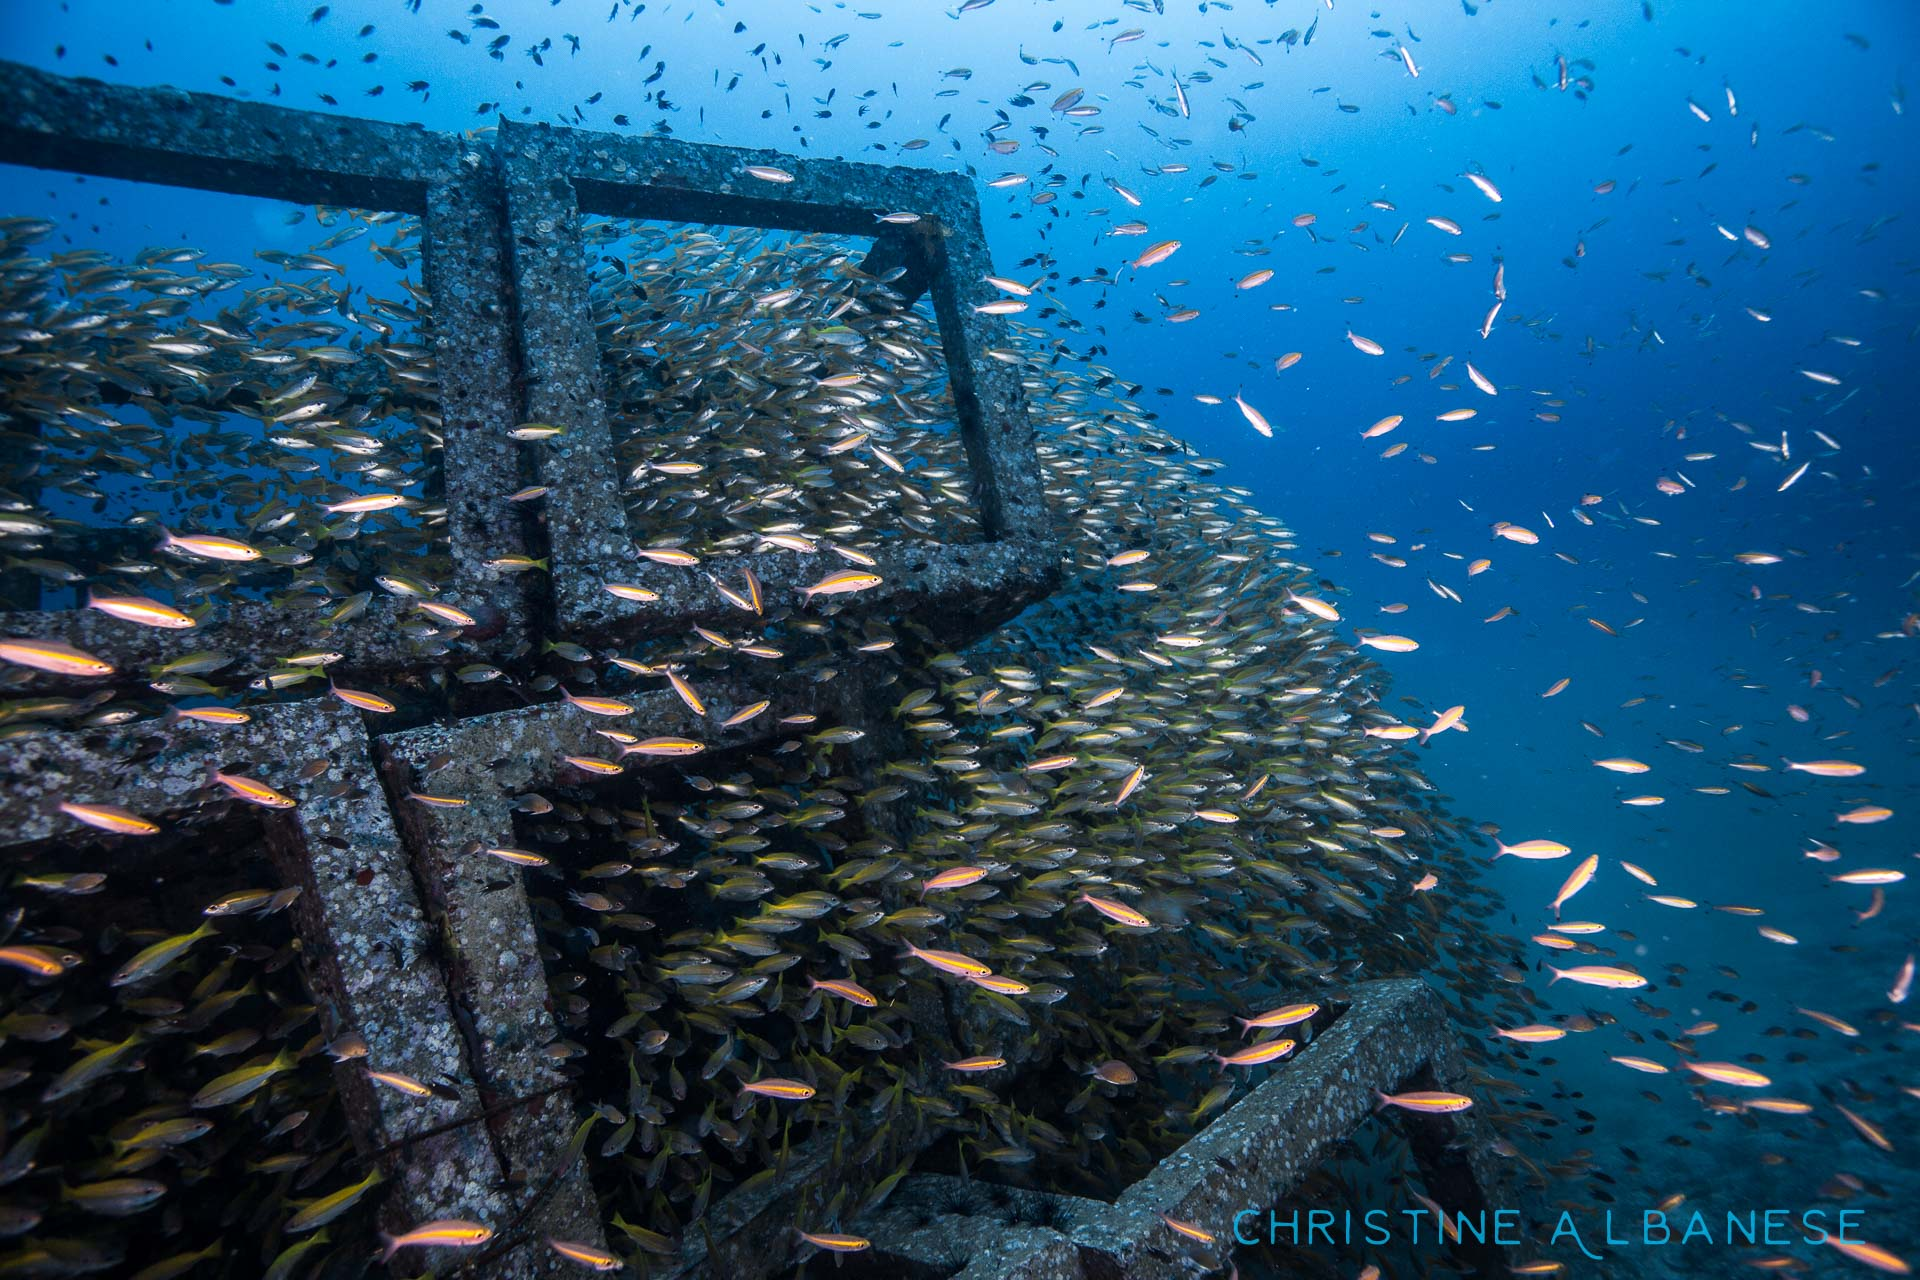 Fish explosion!! These concrete blocks were placed next to Sail Rock... They sit at around 30m and are completely covered in fish life. These act as fantastic artificial reefs :)   #underwater #underwaterphotography #uwphotography #EarthCapture #padi #wideangle #canon6d #canon1740 #ikelite #ds160 #scuba #scubadiving #adventure #sailrock #kohtao #thailand #divinglife #abundance #explosion #lovemyjob